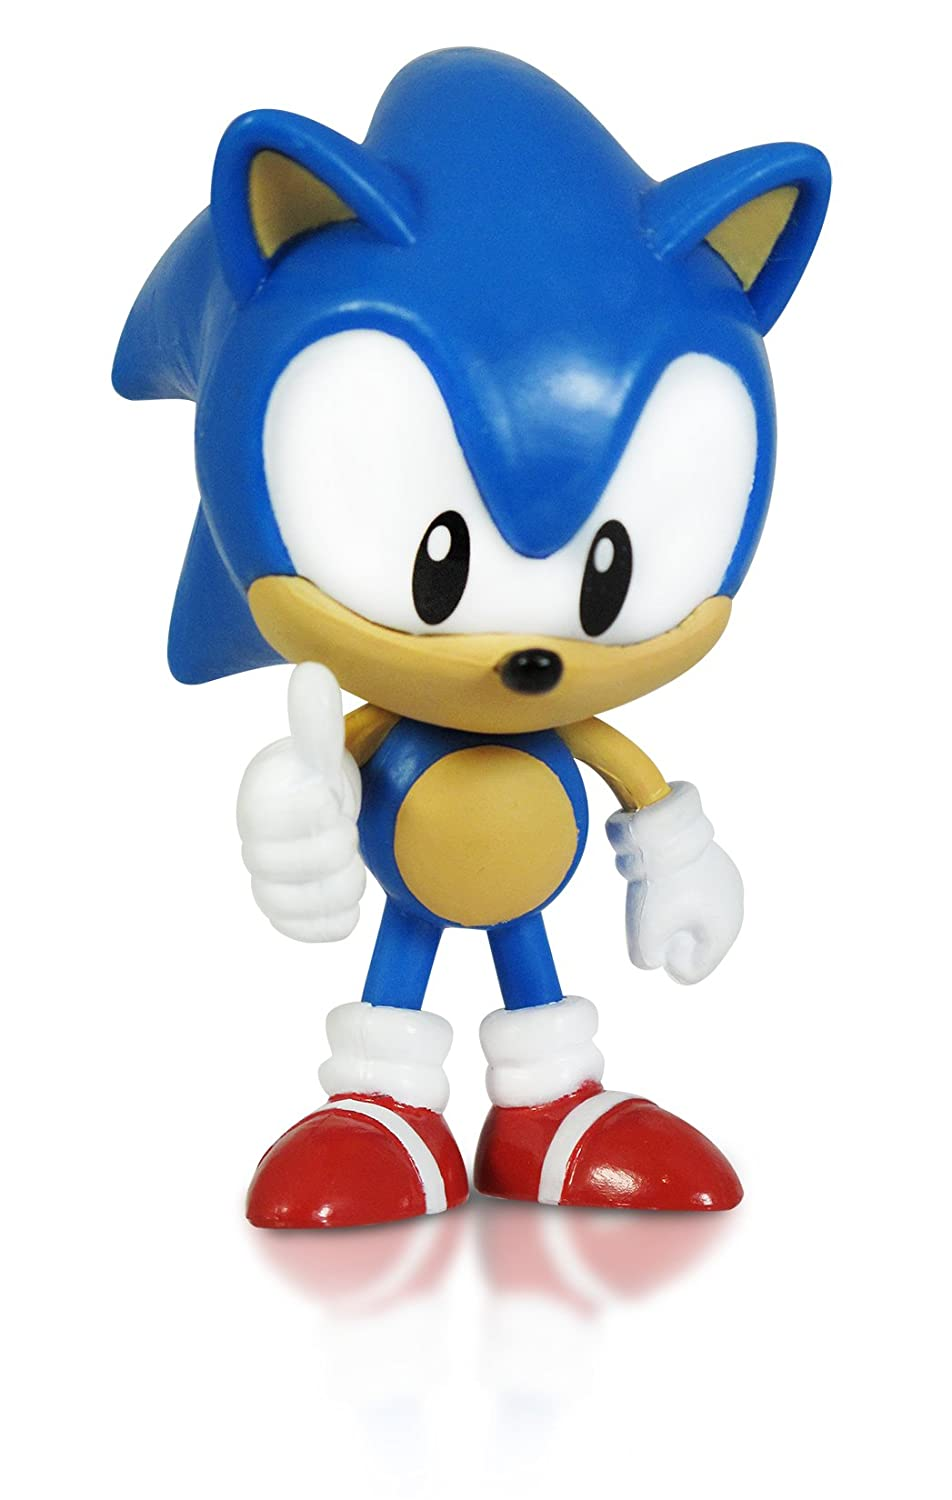 Glitzgamer Sonic The Hedgehog Morphed Classic Sonic Action Figure 2 75 Inch